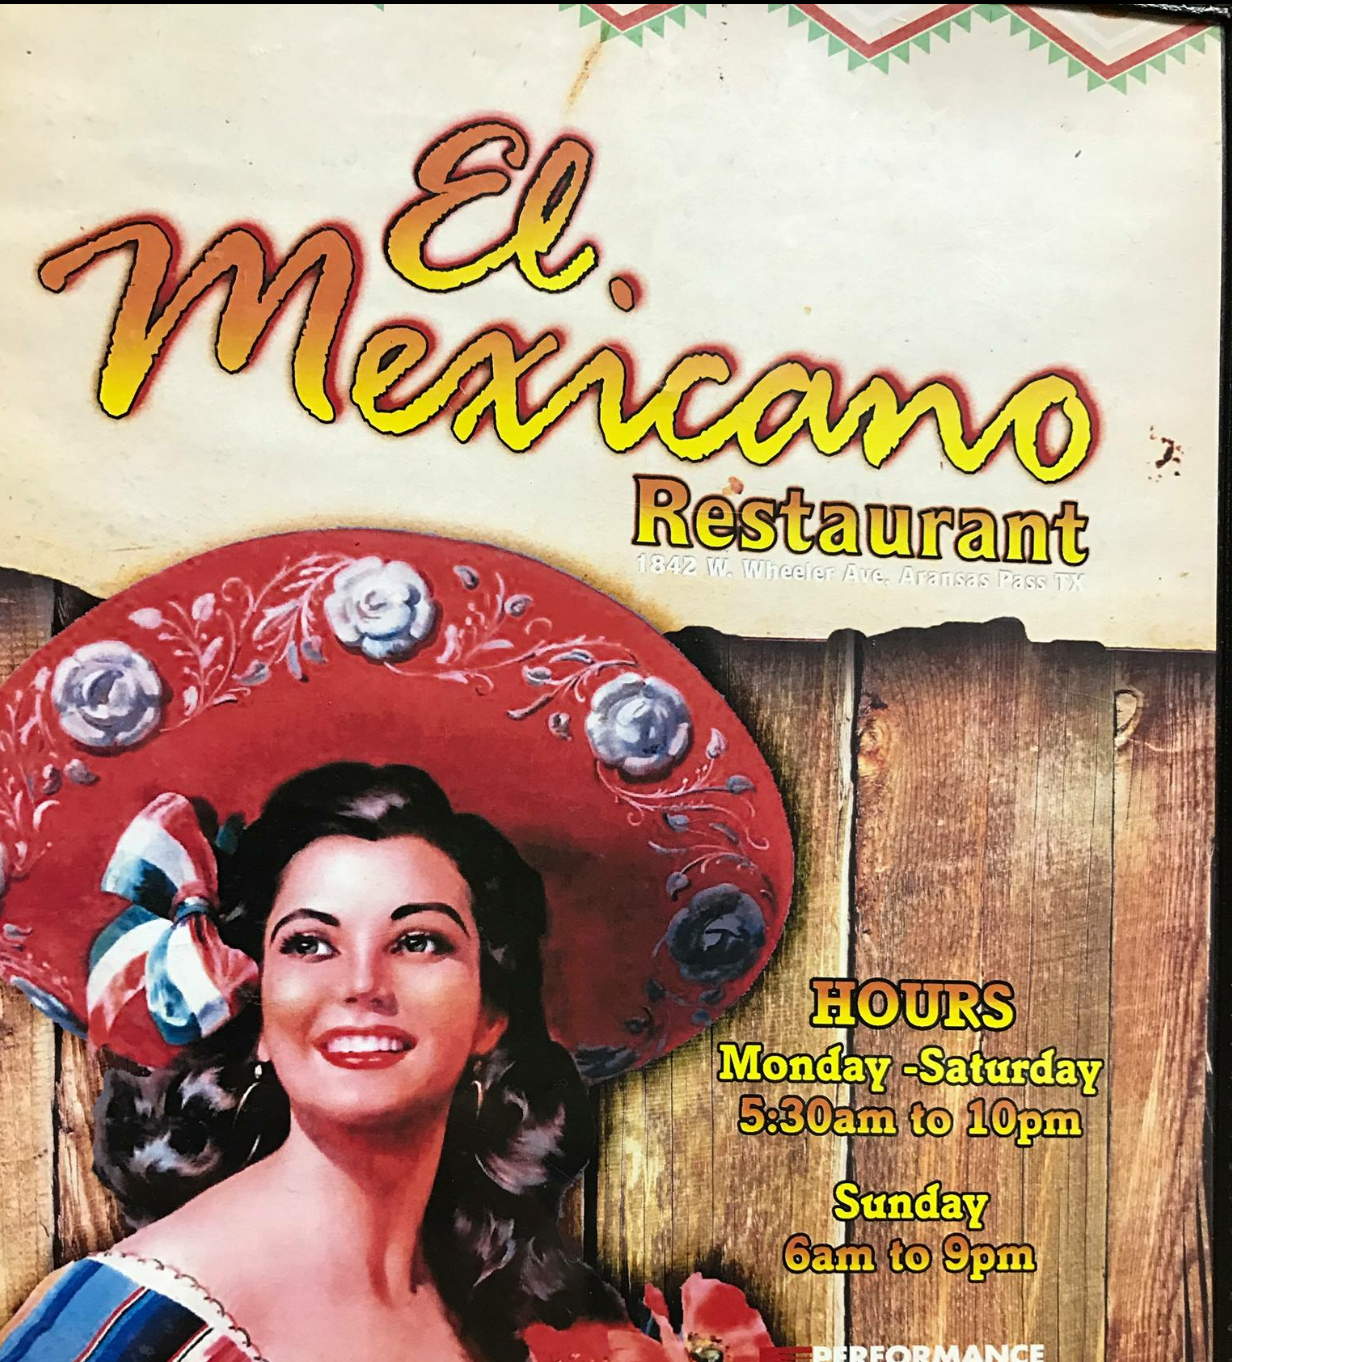 Restaurant in TX Aransas Pass 78336 El mexicano restaurante 1842 W Wheeler Ave  (361)758-7580